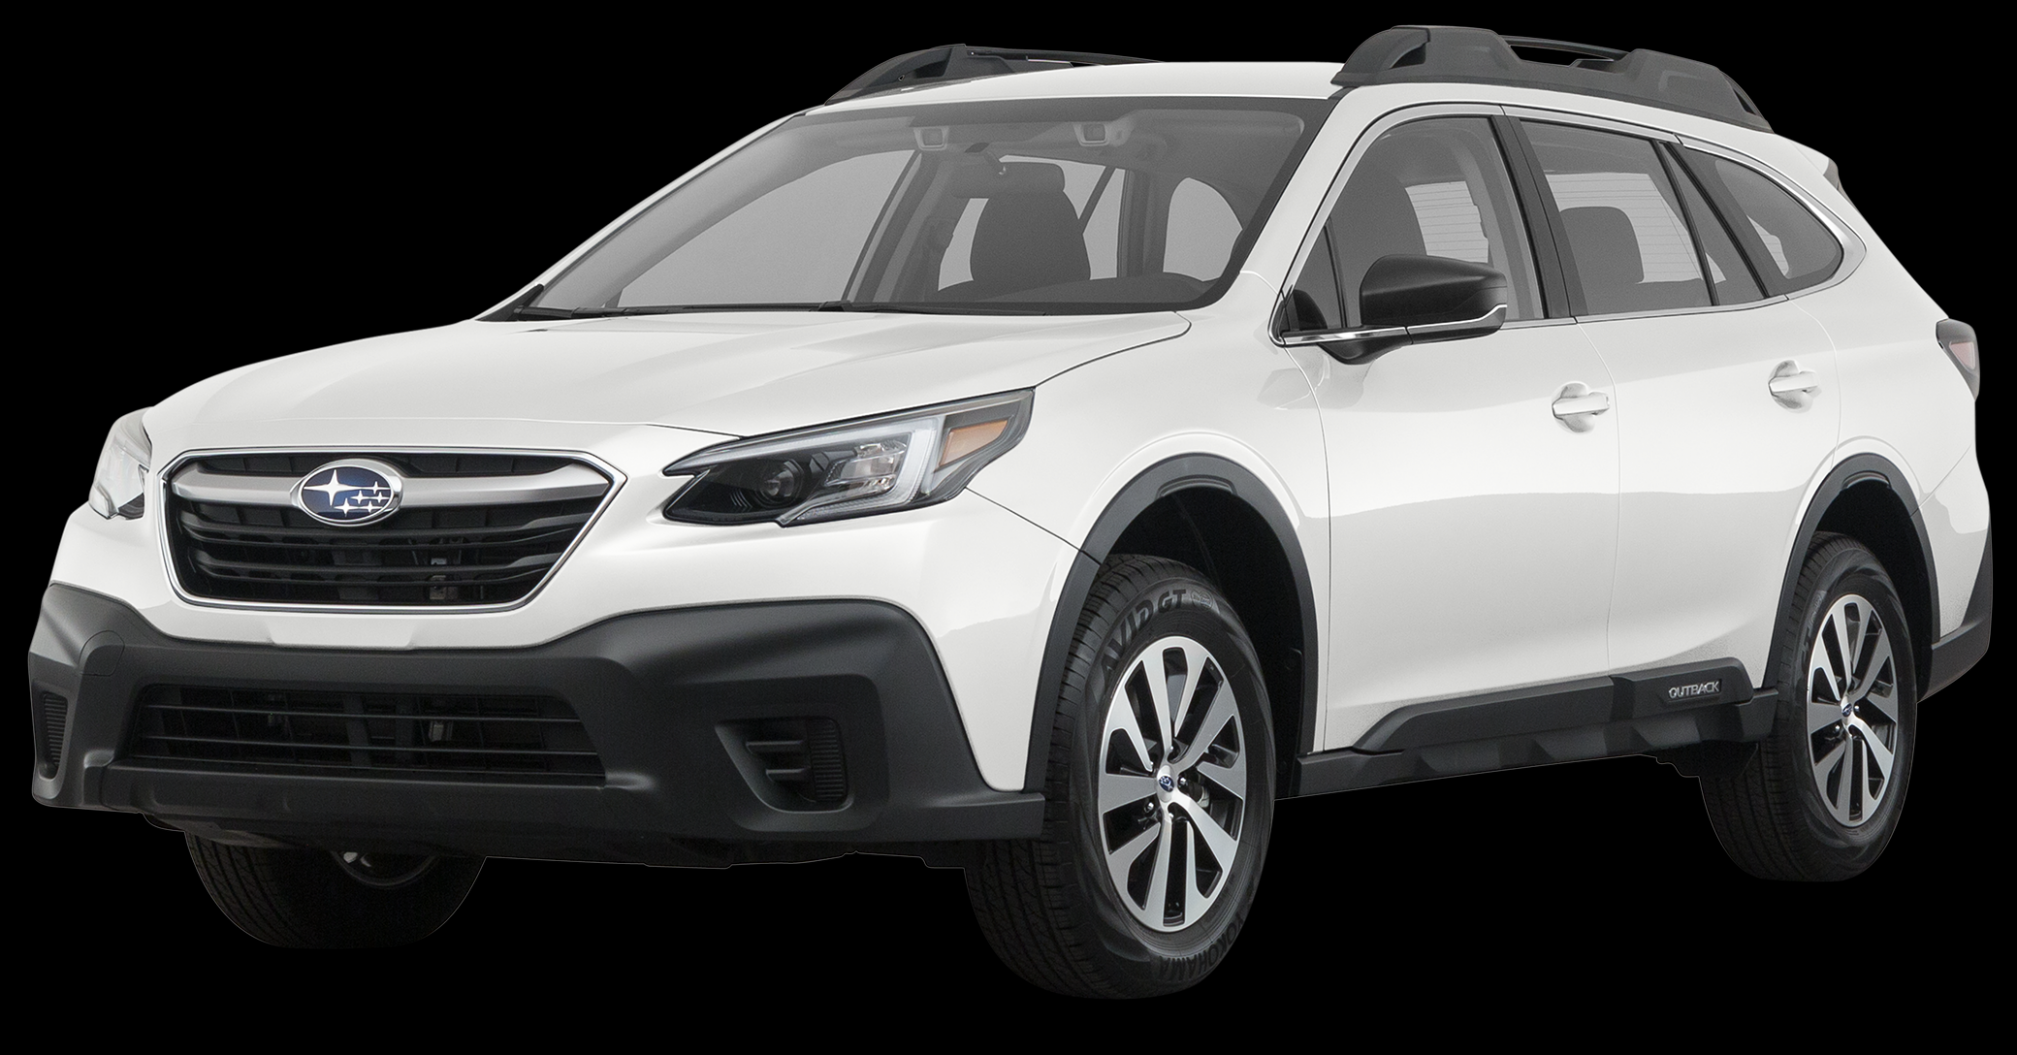 11 Subaru Outback Incentives, Specials & Offers in Tinton Falls NJ - 2020 subaru outback zero percent financing